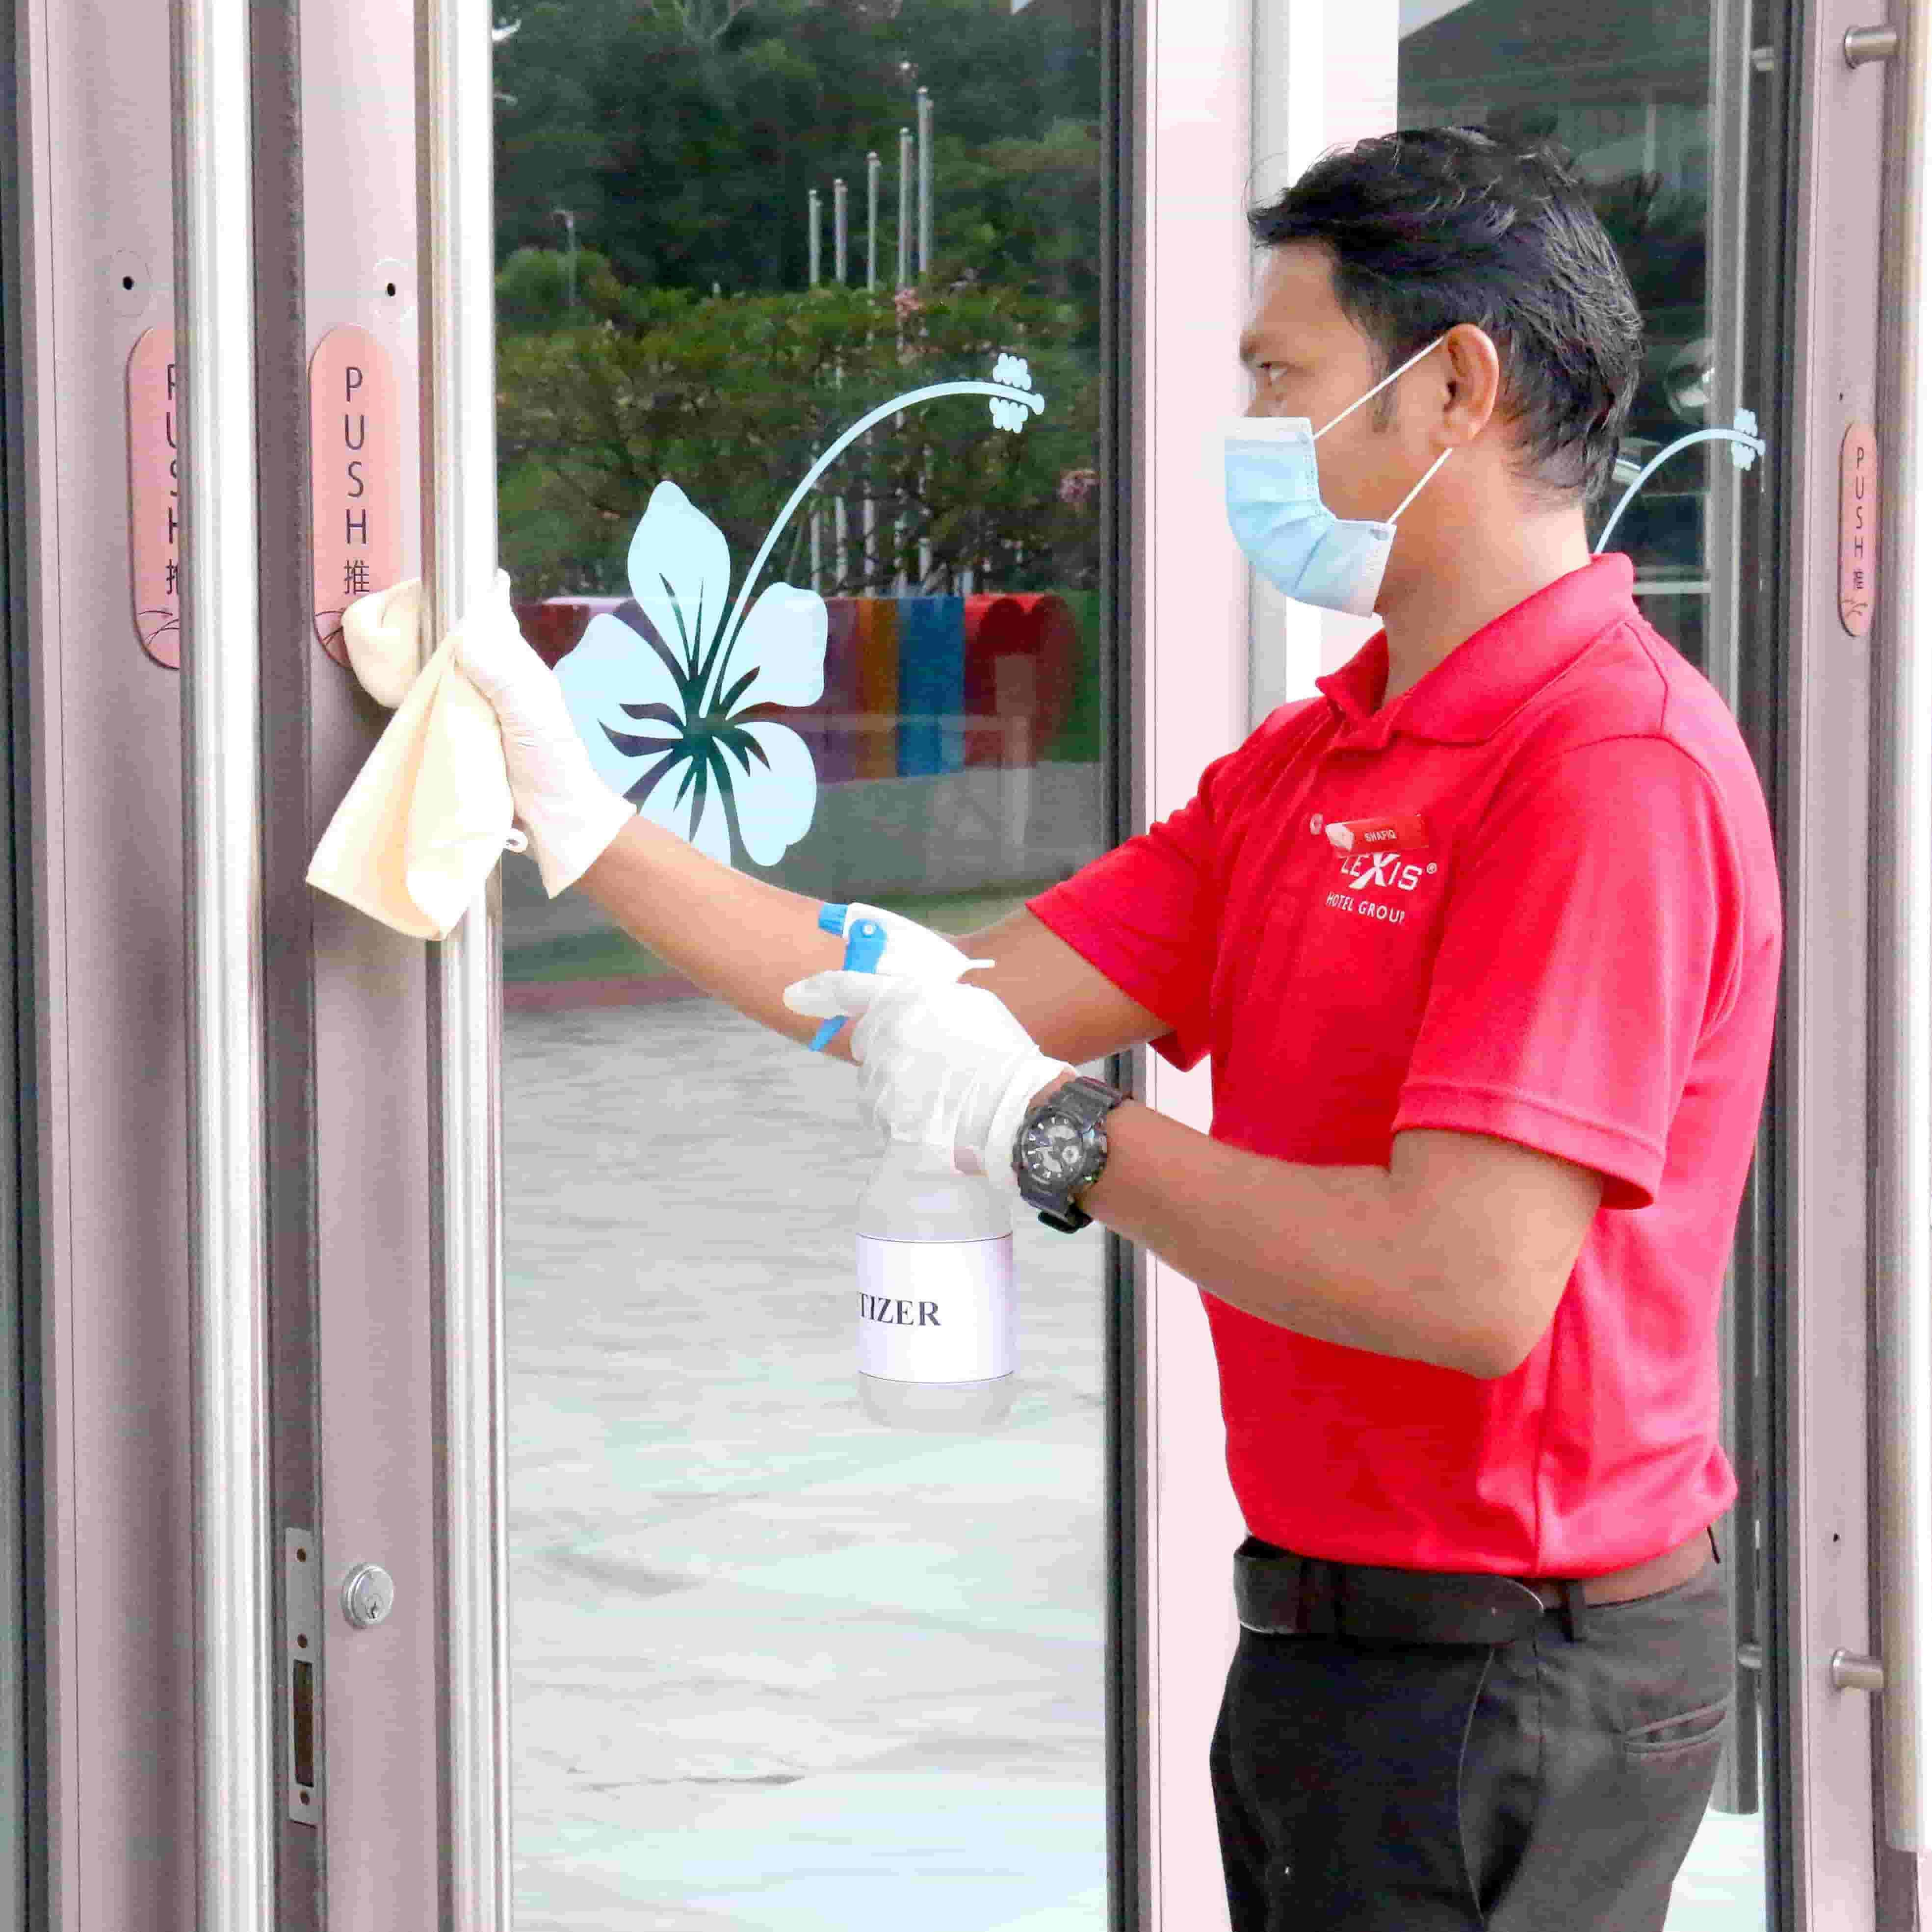 News 2020 - Enhance Cleaning Protocols During MCO | Lexis Hibiscus® Port Dickson